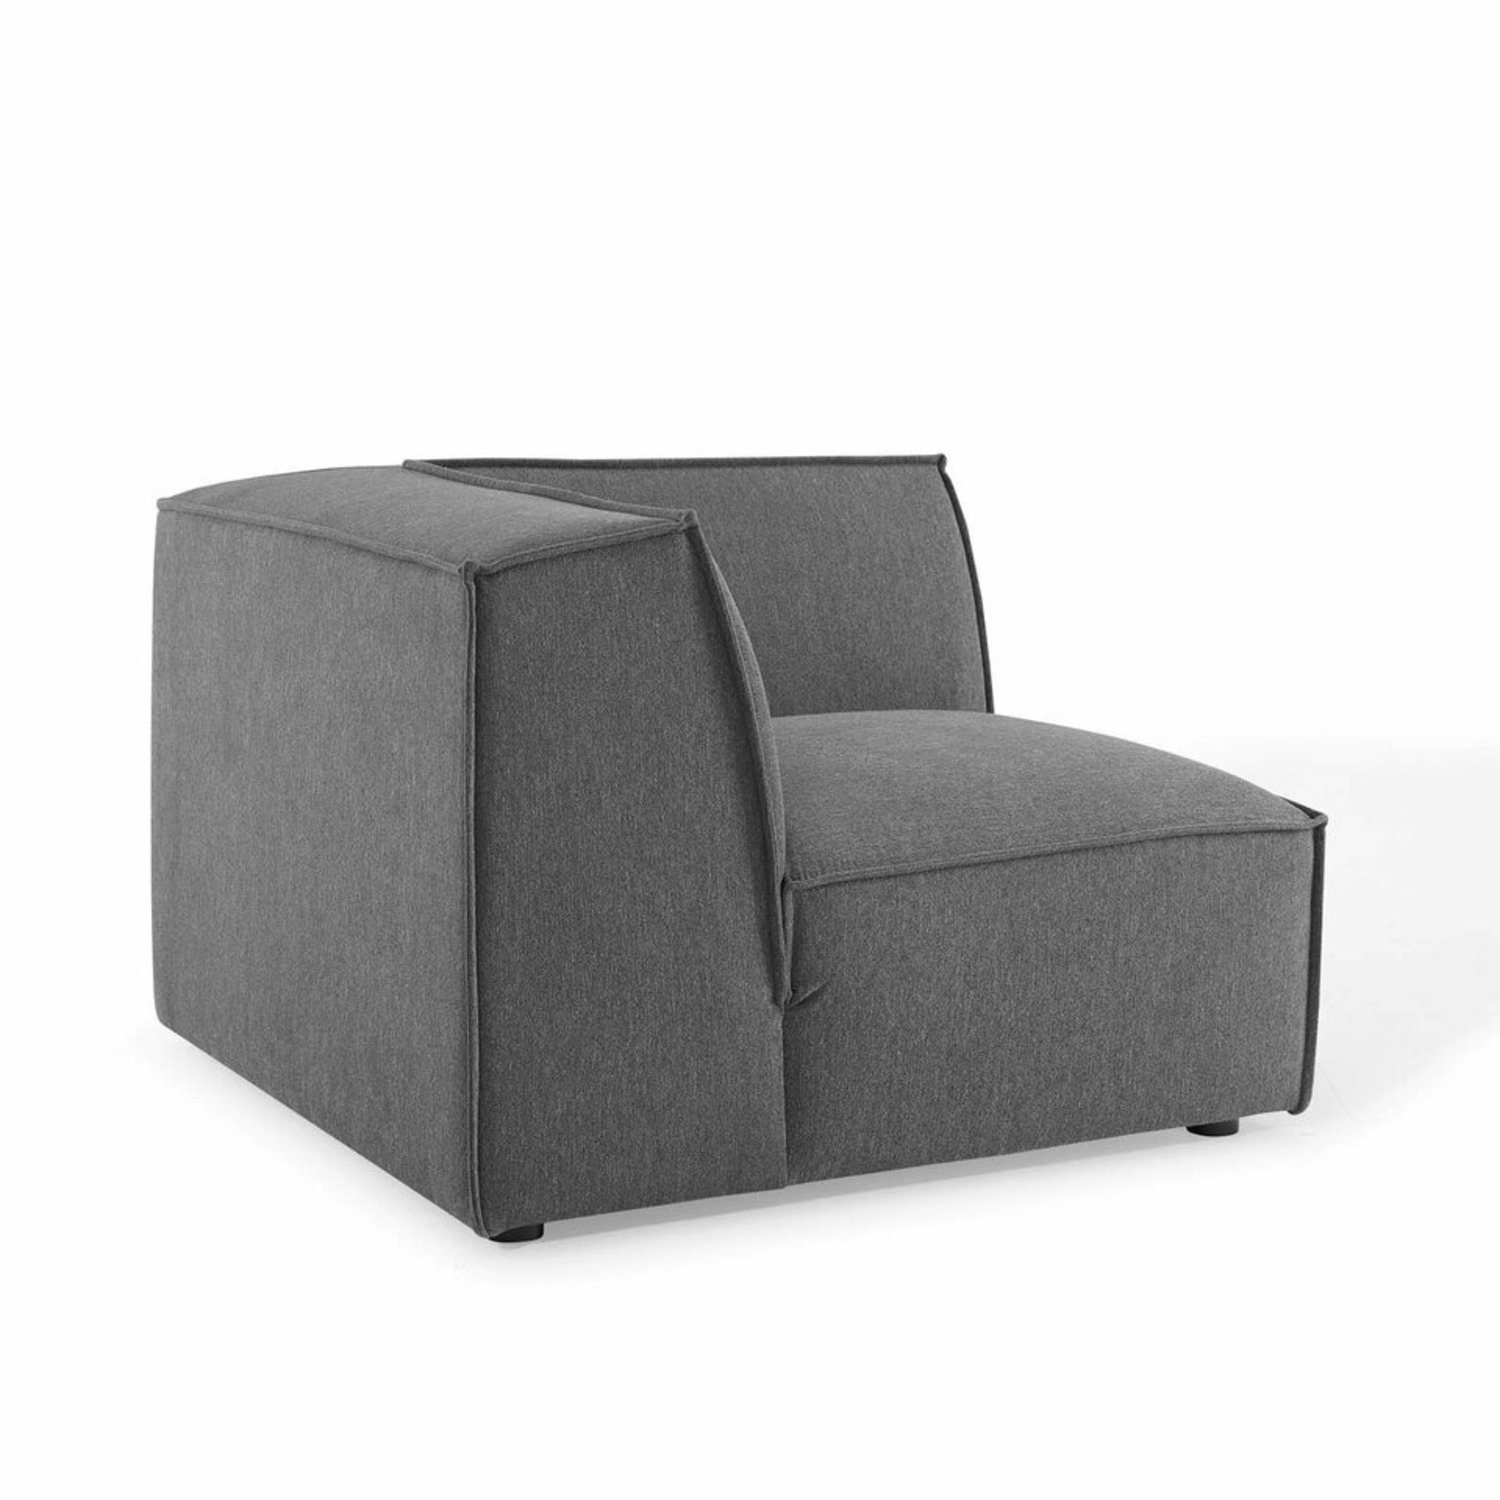 7-Piece Sectional Sofa In Charcoal Upholstery - image-6